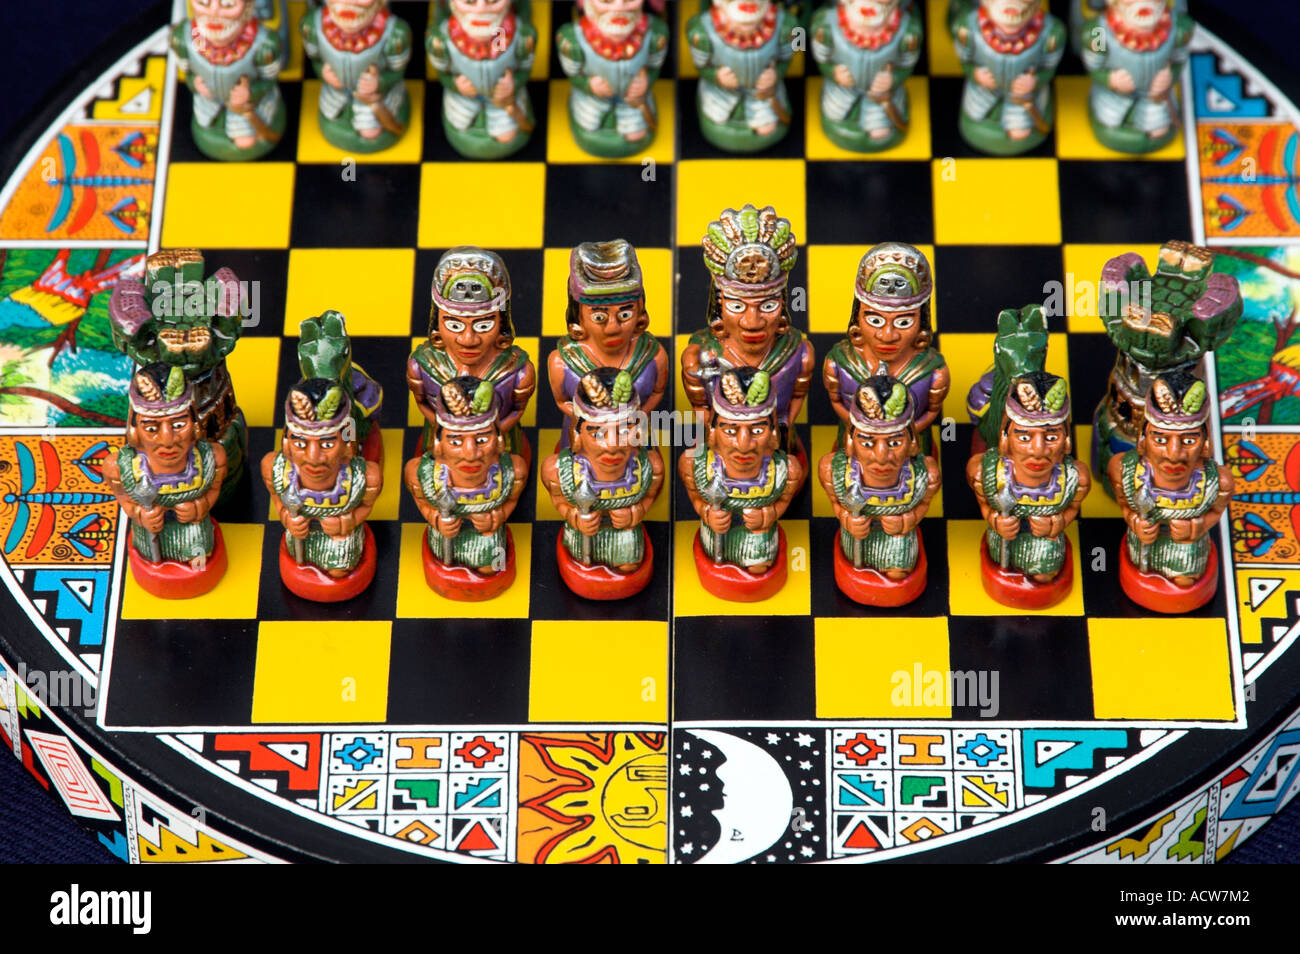 Souvenir chess sets offered for sale in the markets of